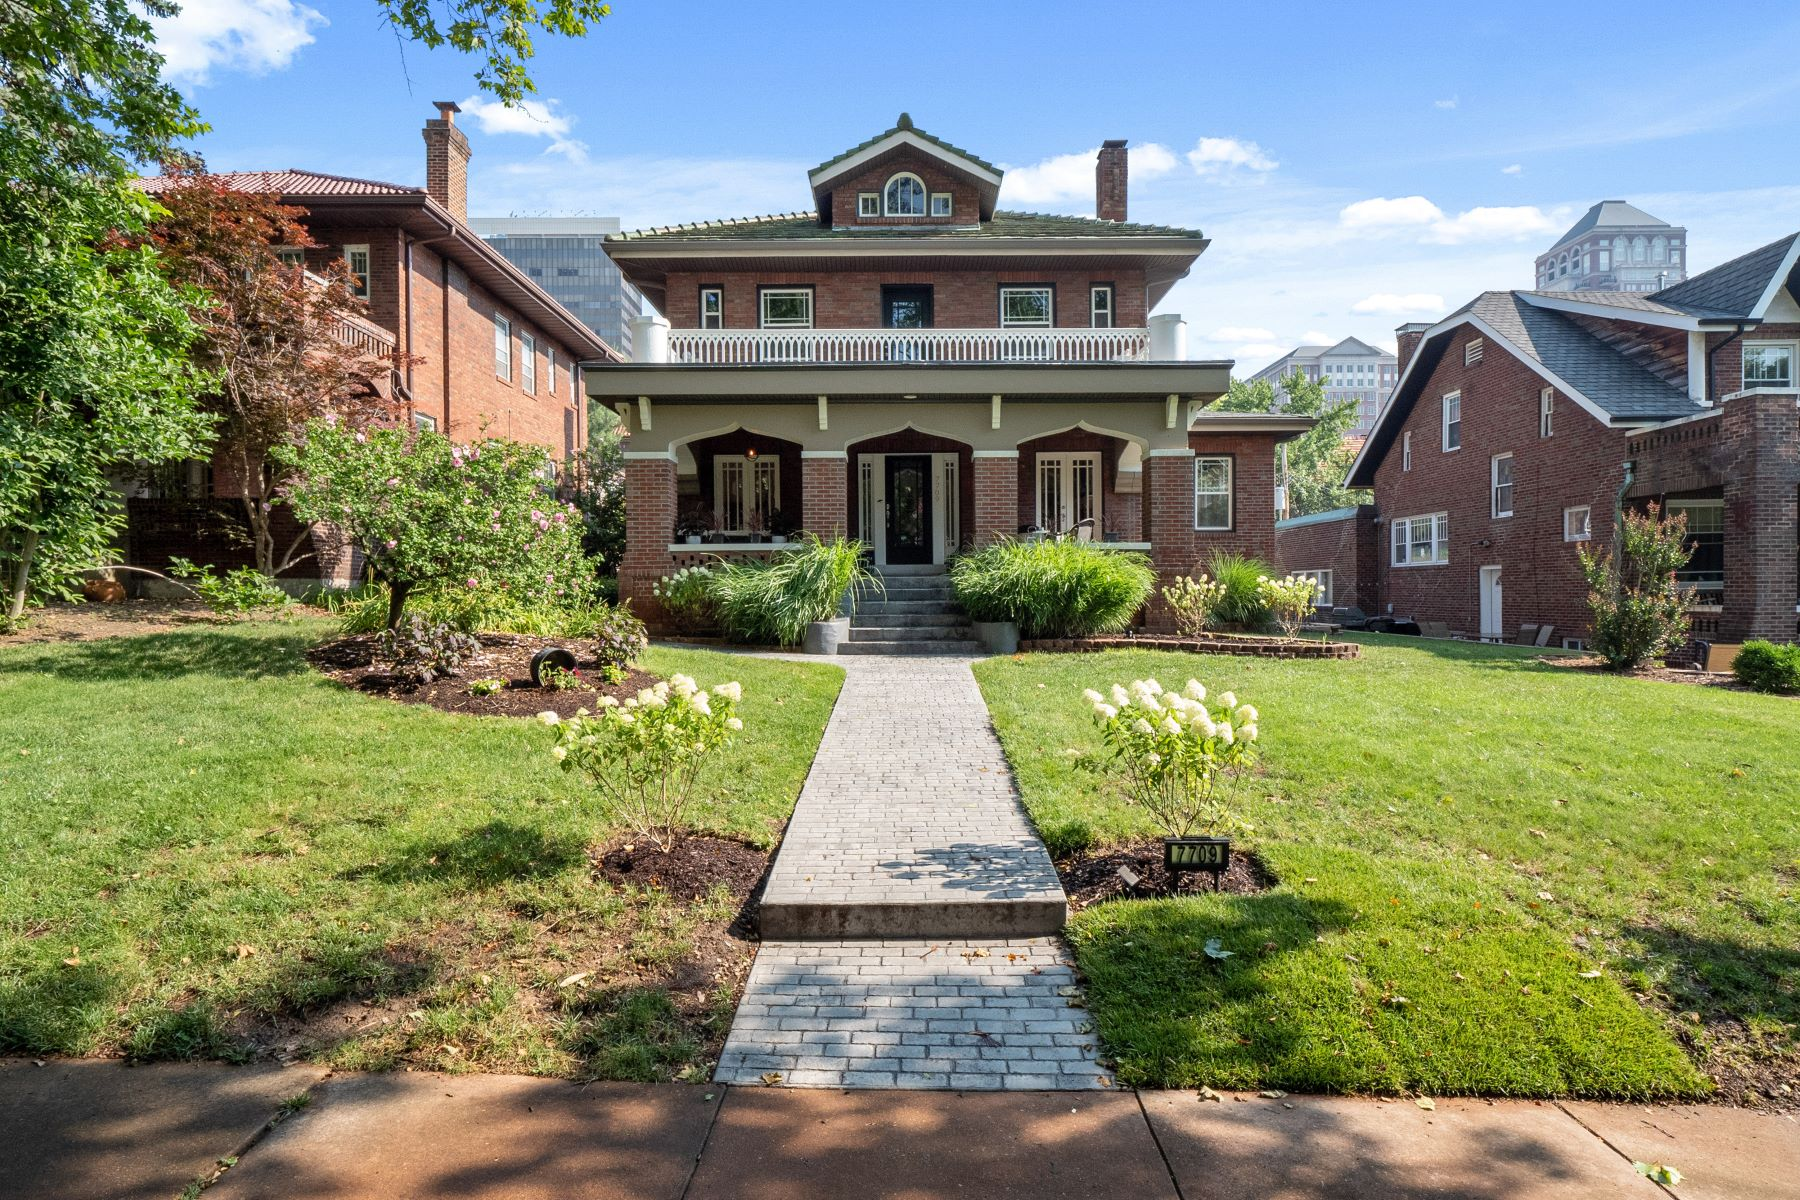 Single Family Homes for Sale at Located at the Heart of Clayton 7709 Country Club Court Clayton, Missouri 63105 United States